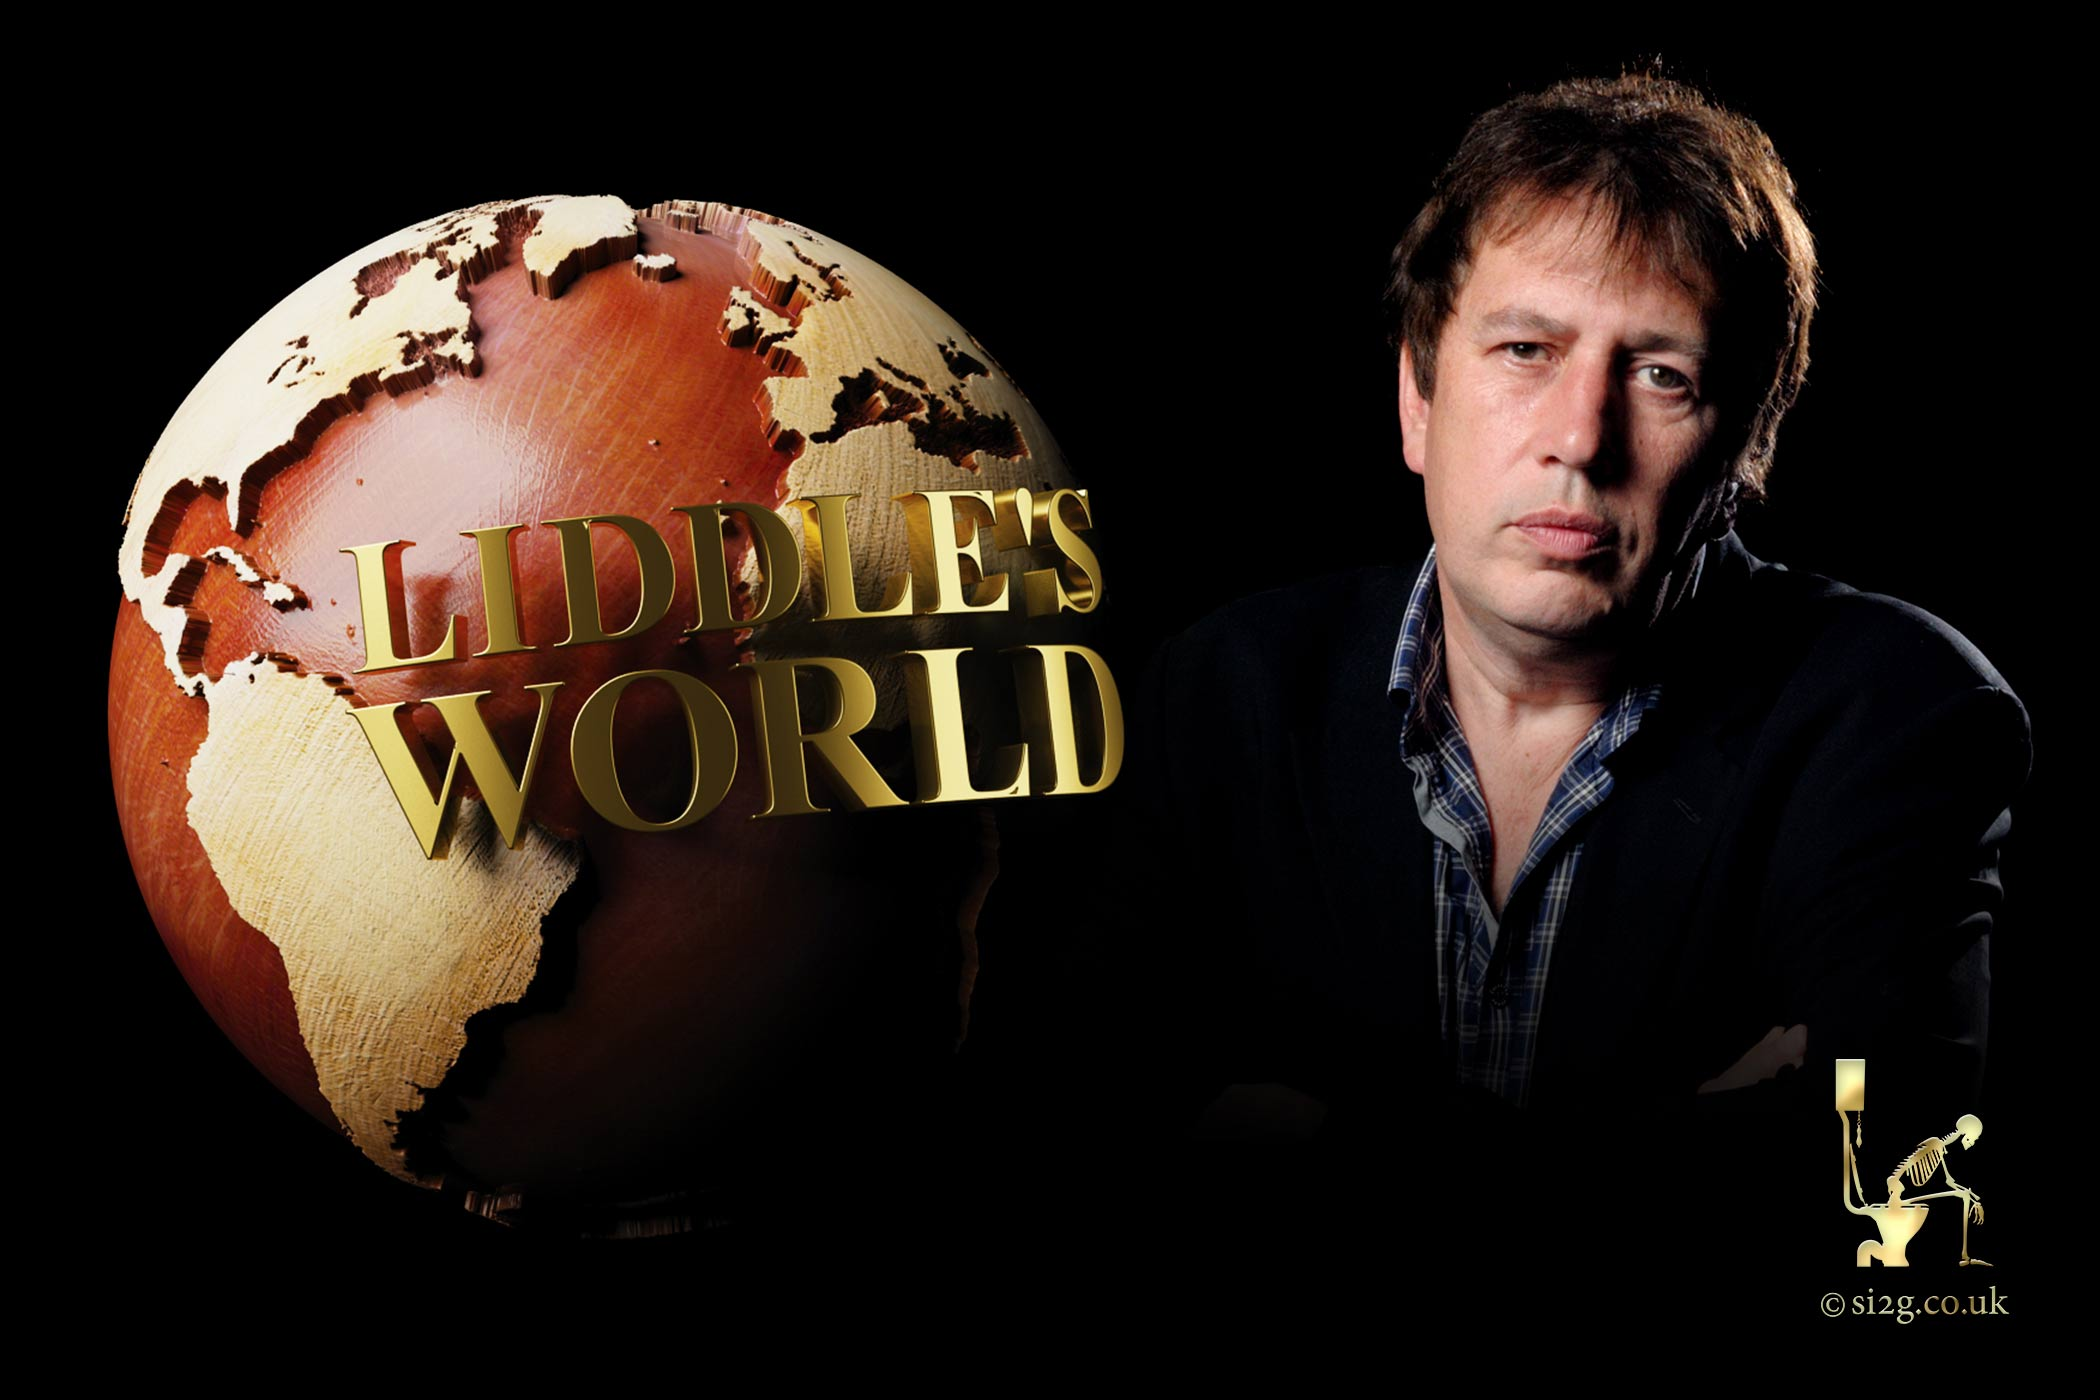 Liddles World - Animated motion graphics and print design for TV production.  We set up our shoot in the Hospital Club studio and filmed Rod Liddle against a black background.  We then designed a wooden globe in 3D and composited it to form a title sequence, publicity and TX card.